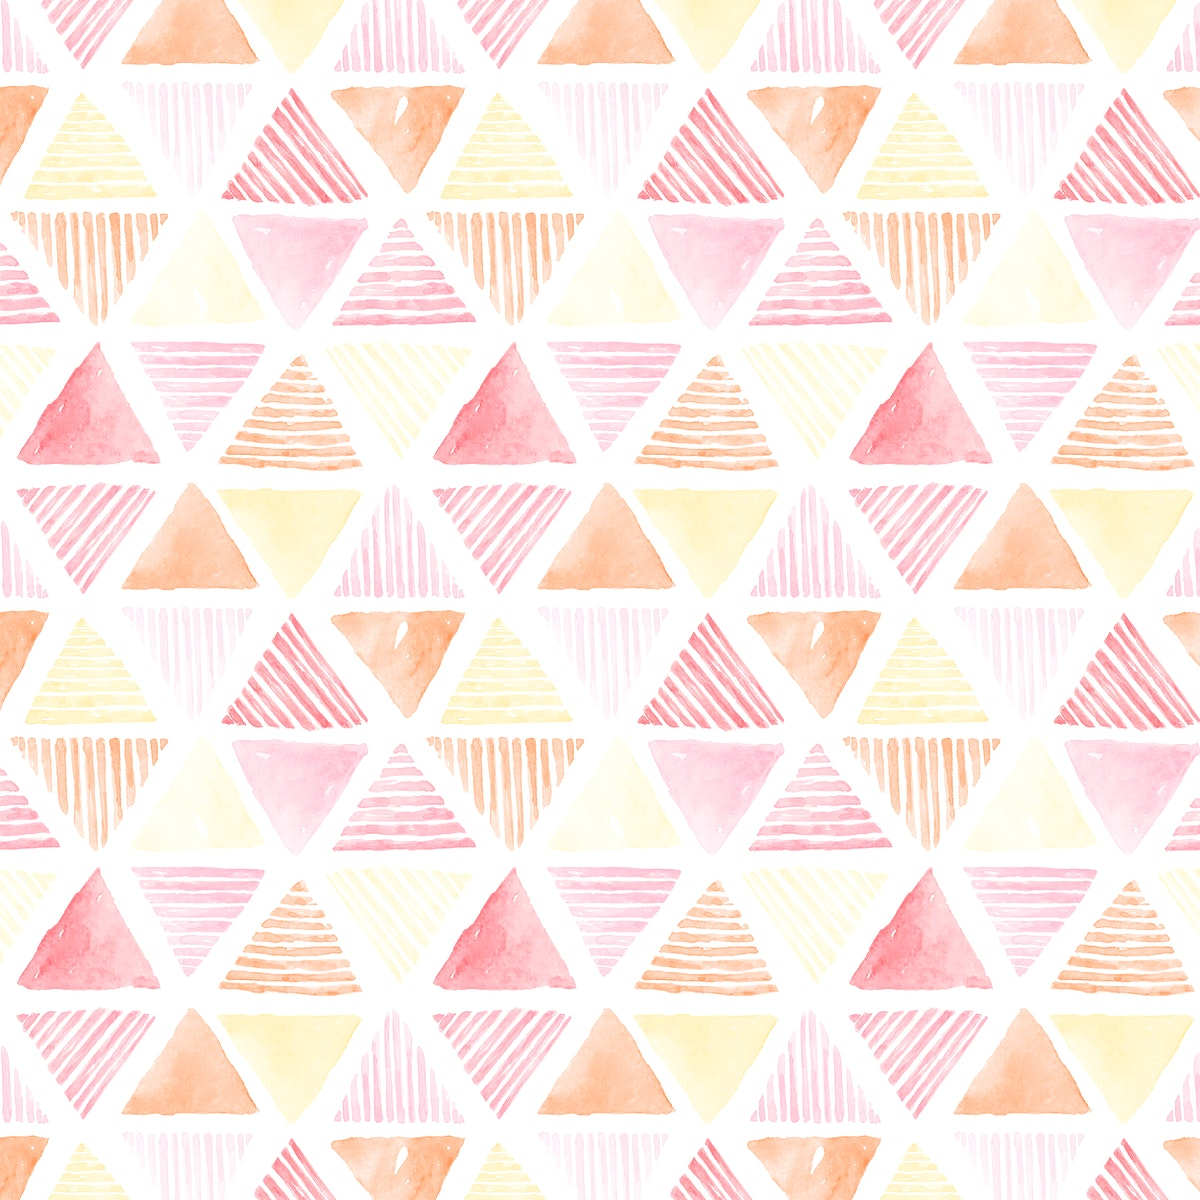 Pink watercolor triangle patterned seamless background vector